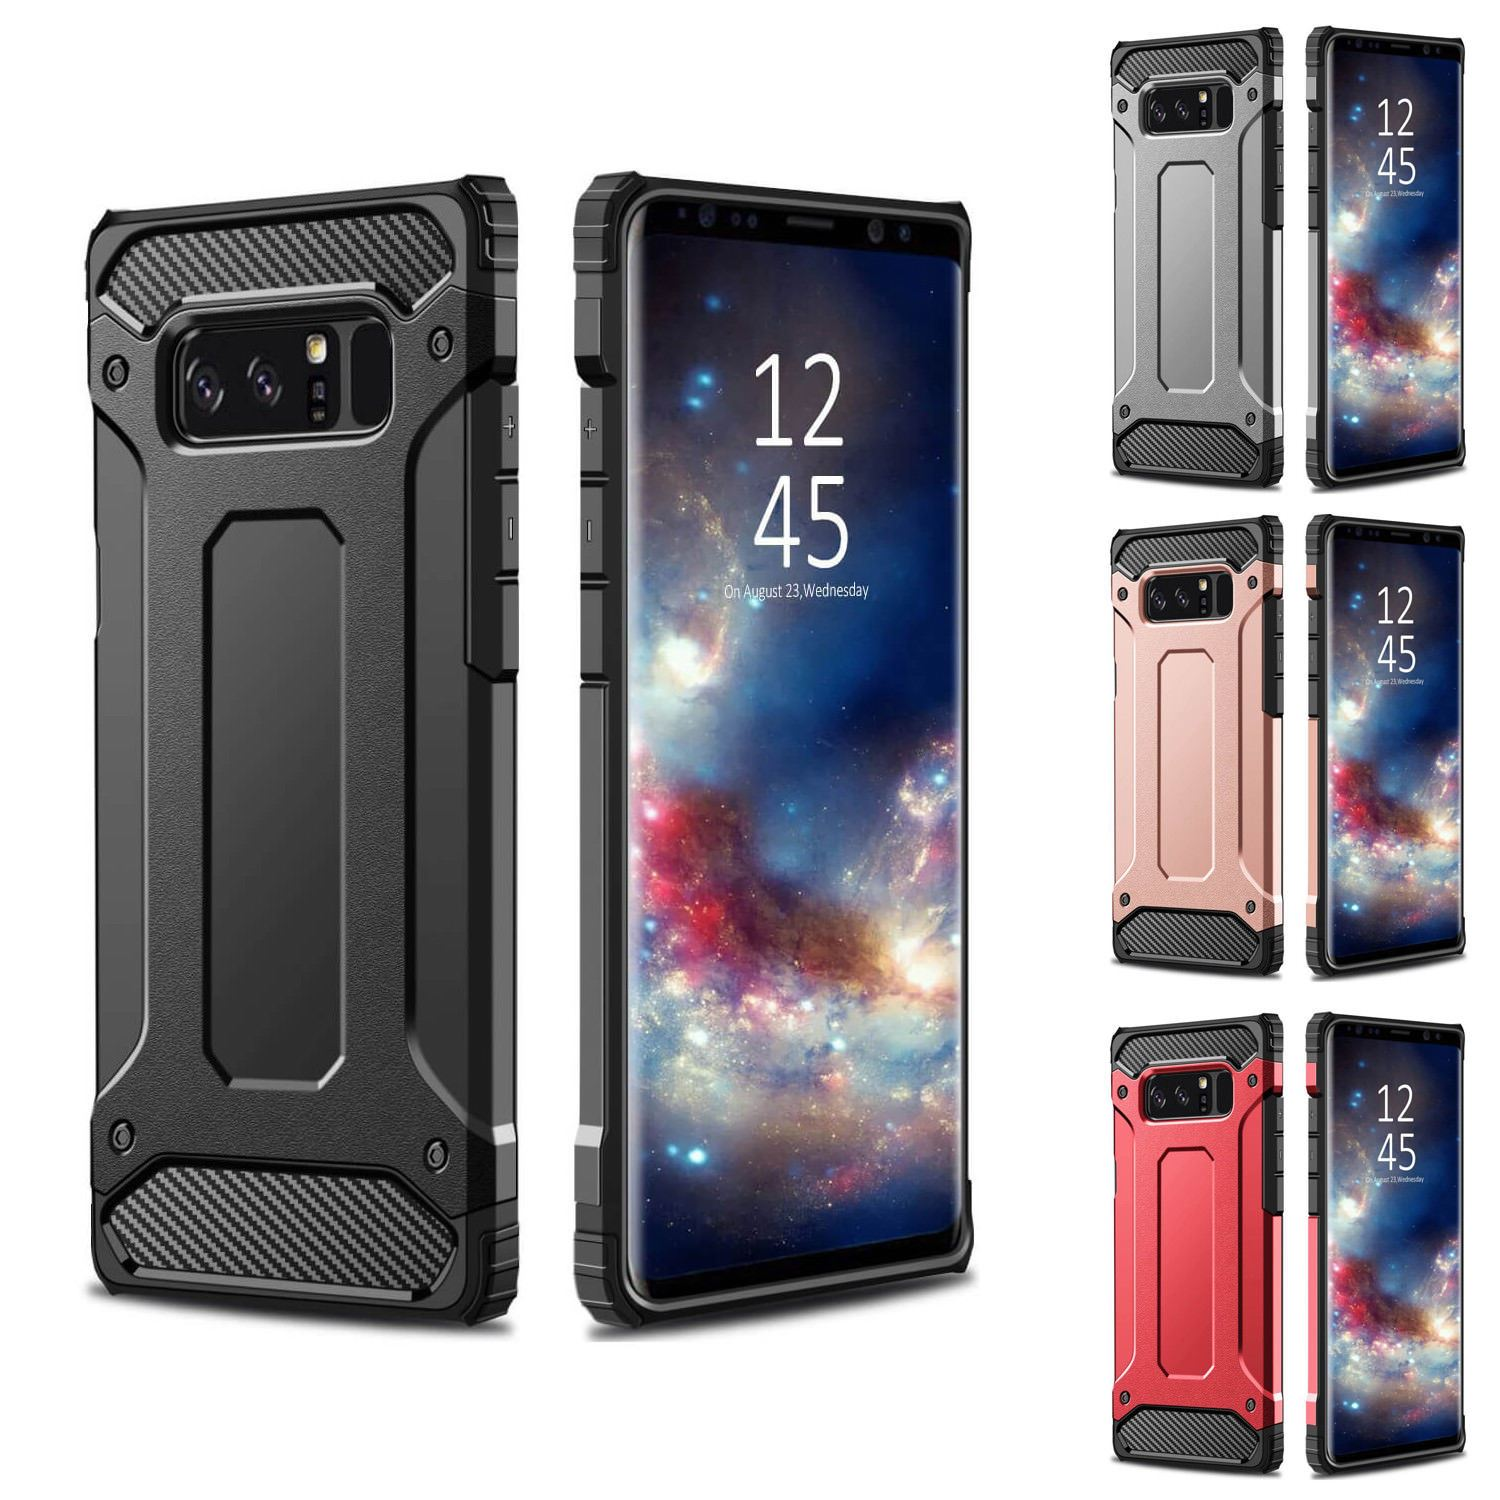 36bbe473346 Details about Hybrid Armor Shockproof Rugged Bumper Case For Samsung Galaxy  S7 Edge S8 Note S9